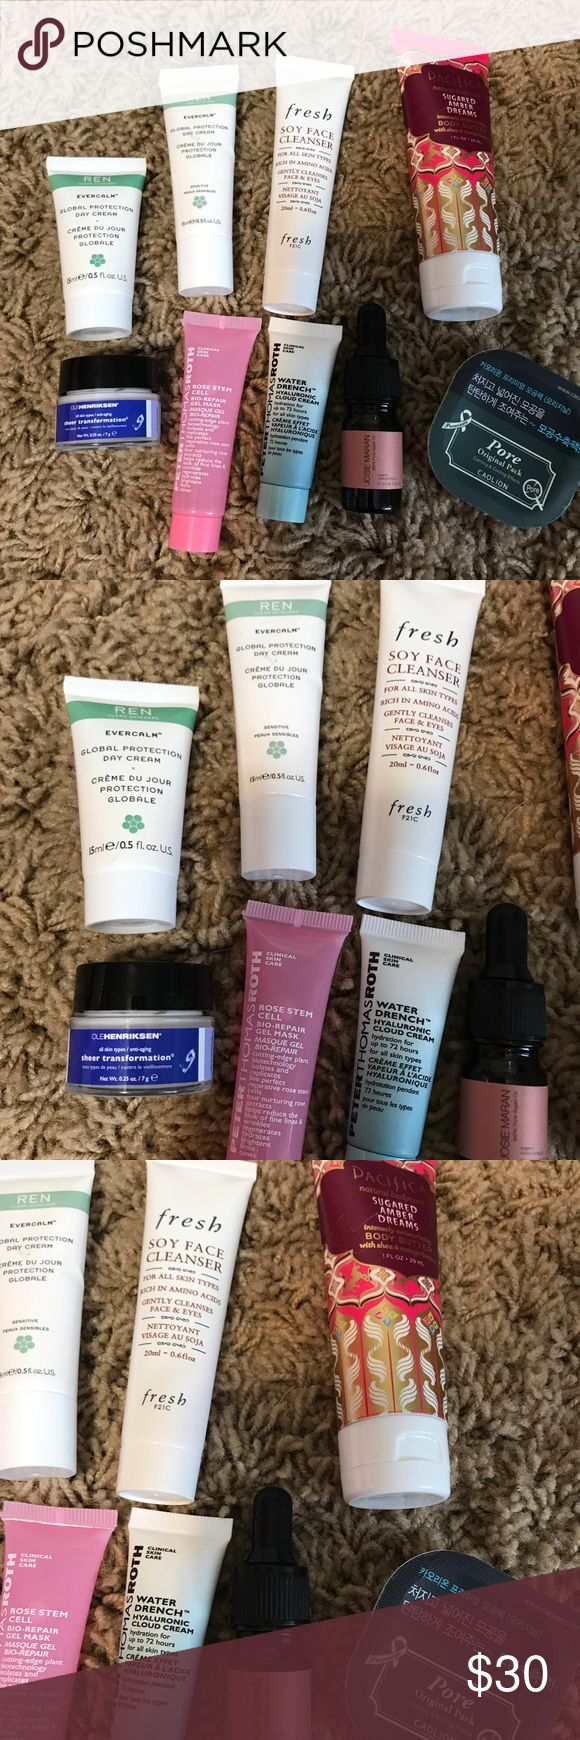 Skin care bundle All new and unused. Includes pore pack, Pacifica body butter, peter Thomas Roth rose mask, peter Thomas Roth water drench, 2 ren moisturizers, Josie Maran argan oil, ole henriksen sheer transformation and fresh soy cleanser Sephora Makeup